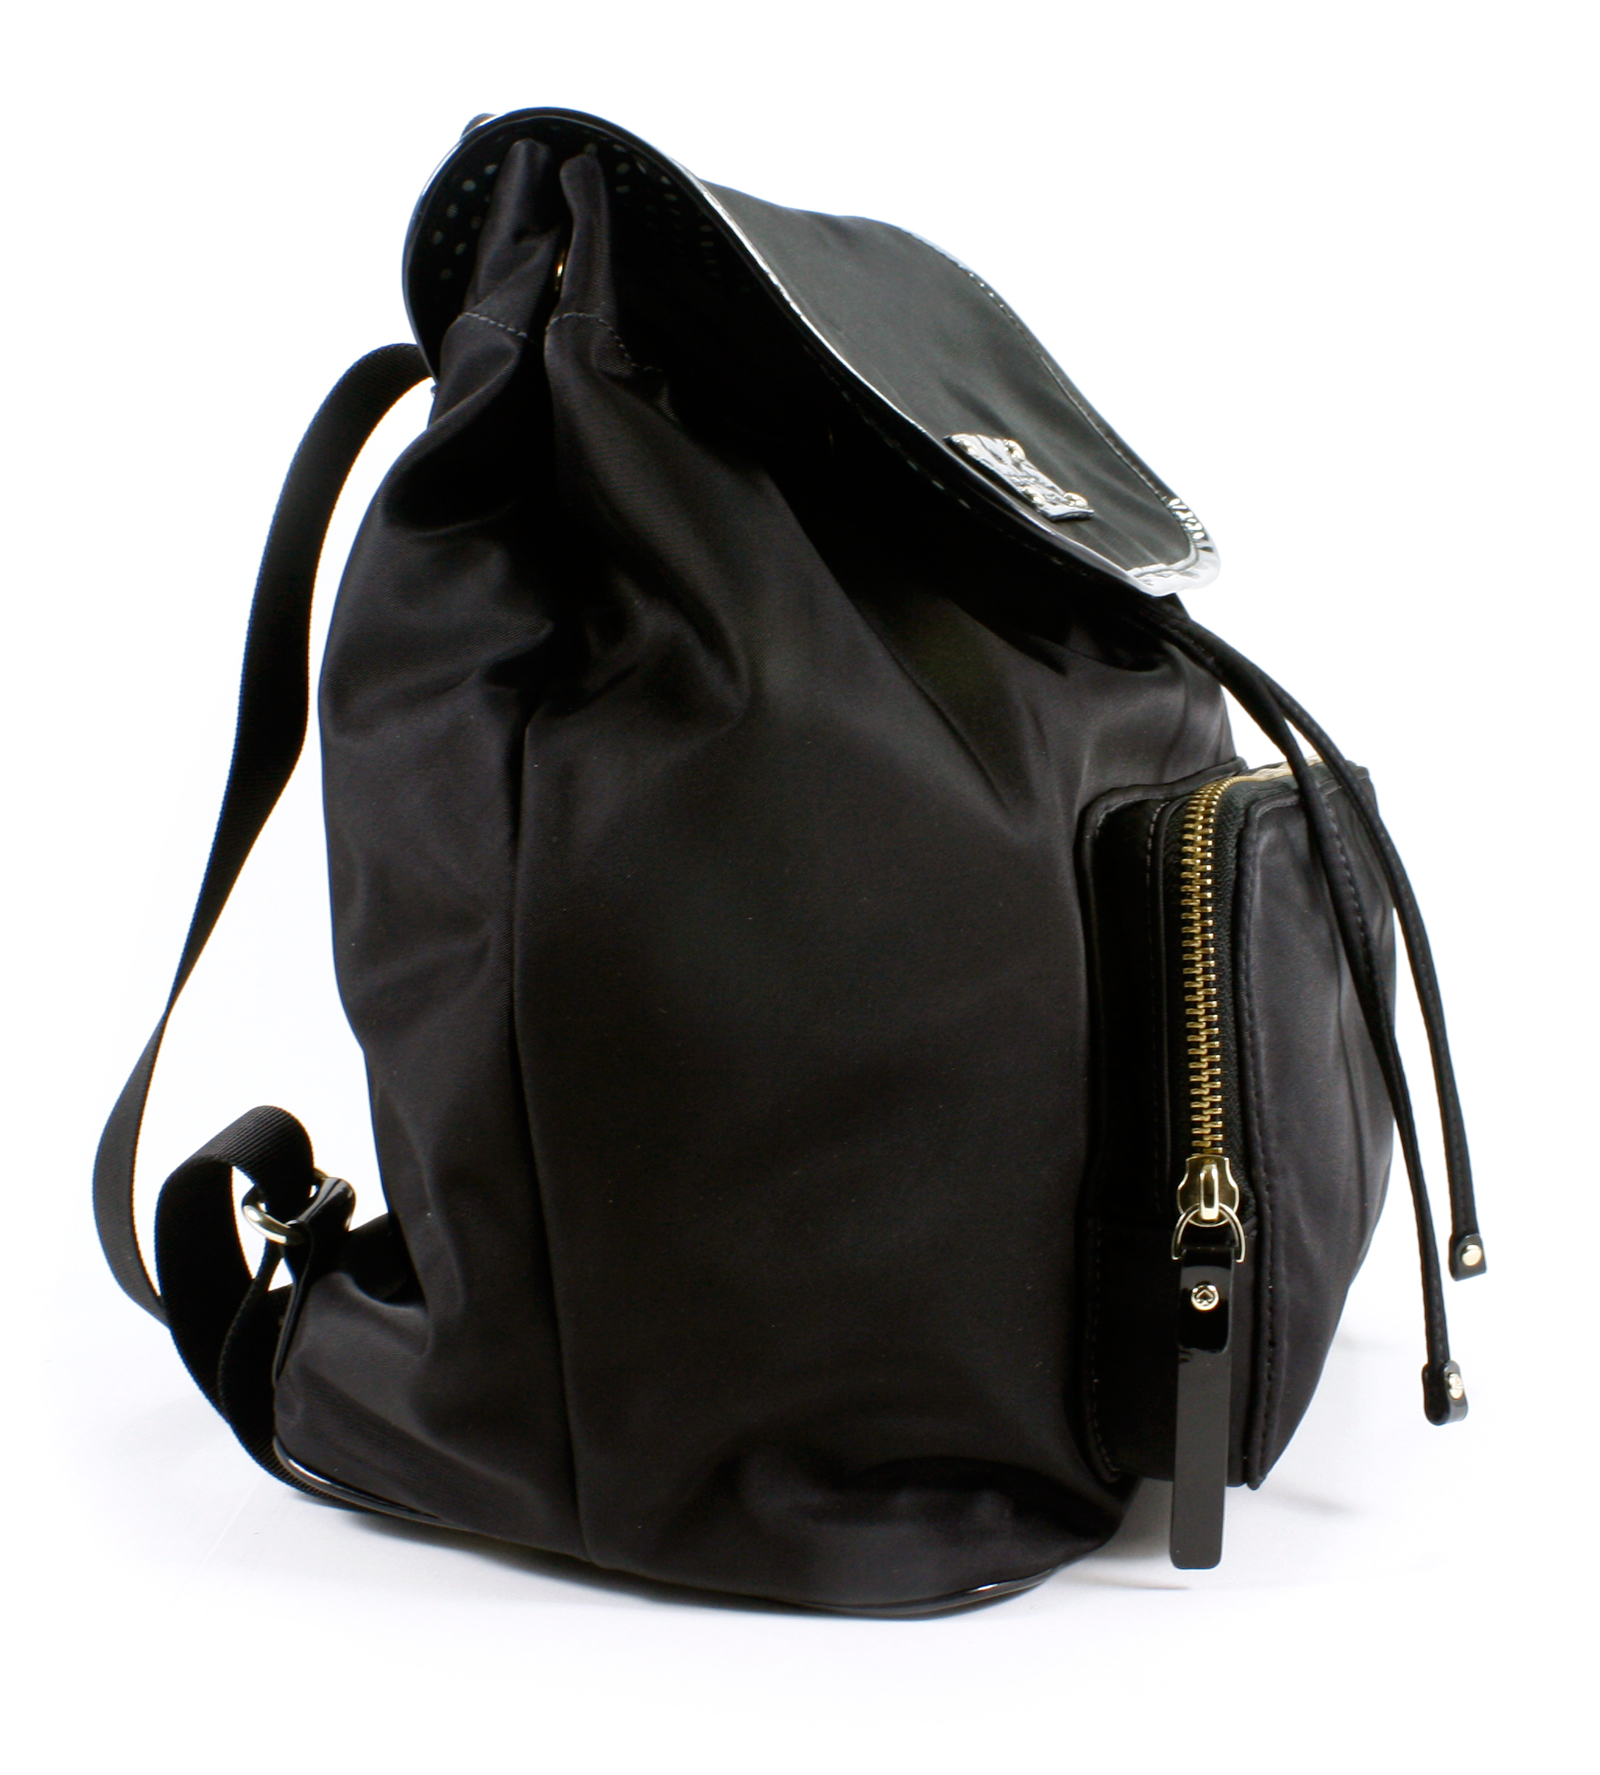 aa61814be28588 Backpack Purse Black Nylon | Stanford Center for Opportunity Policy ...